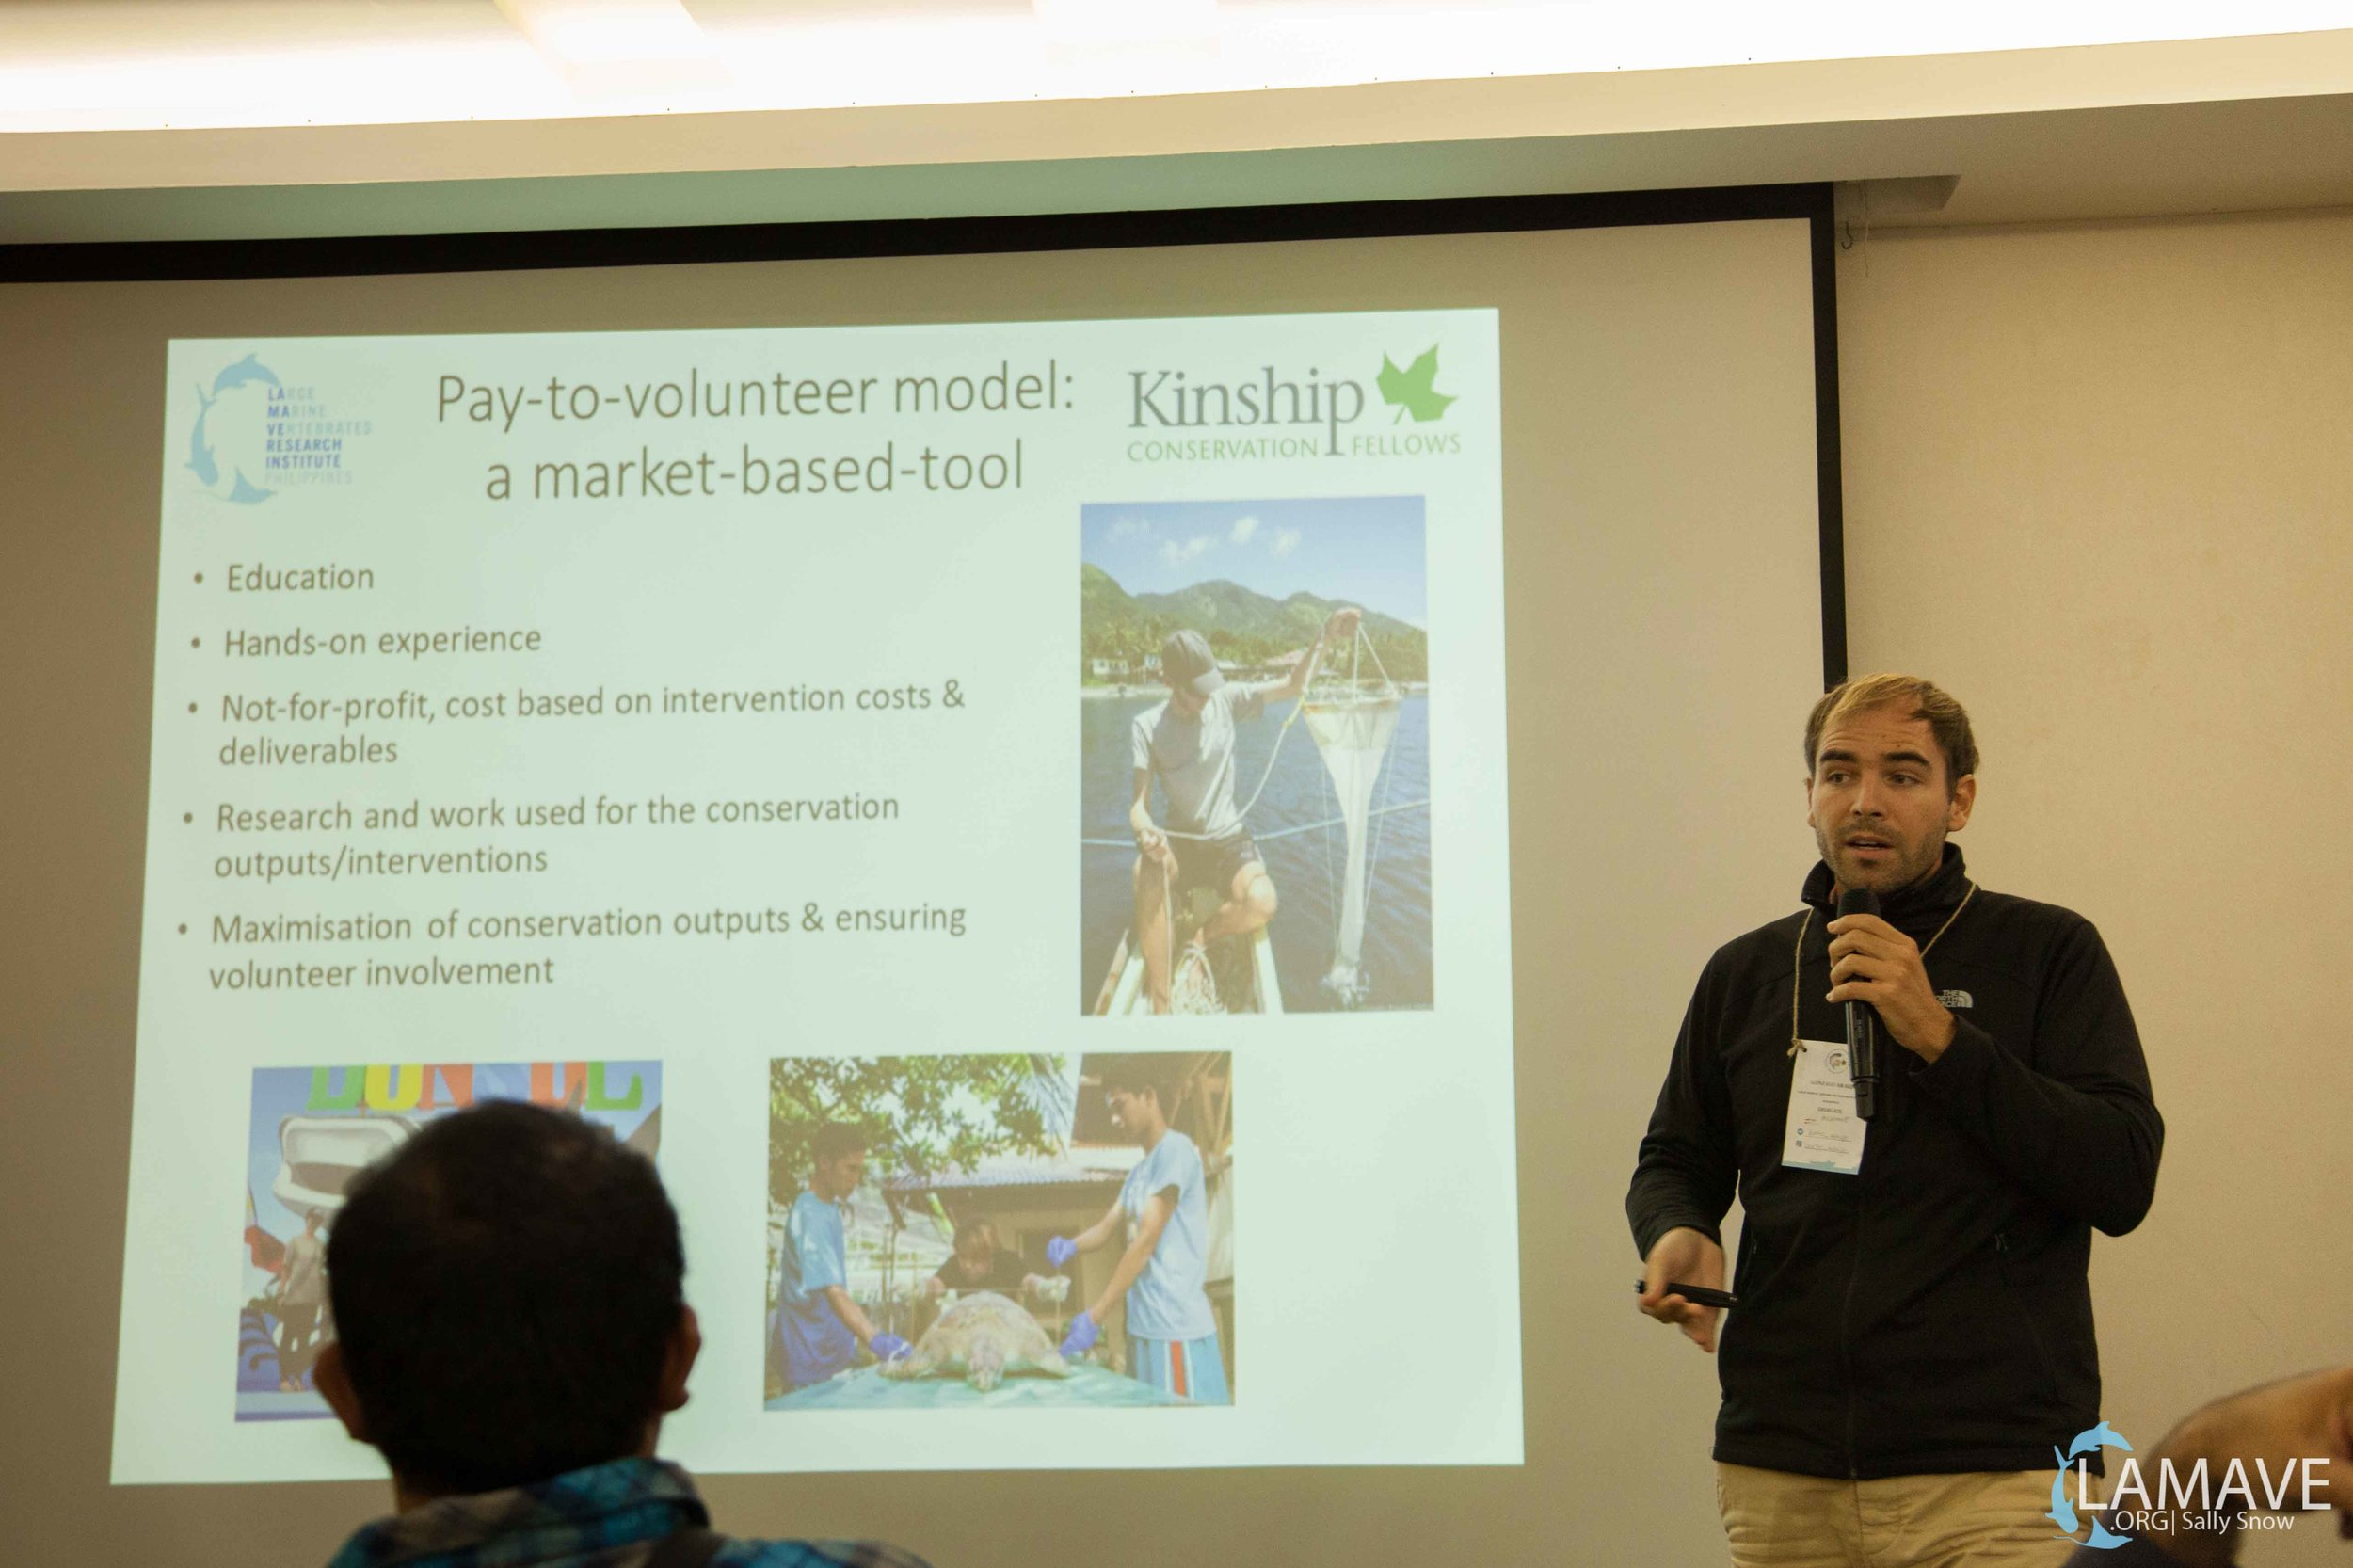 Gonzalo Araujo discussing market-based-tools, thanks to Kinship Fellowship